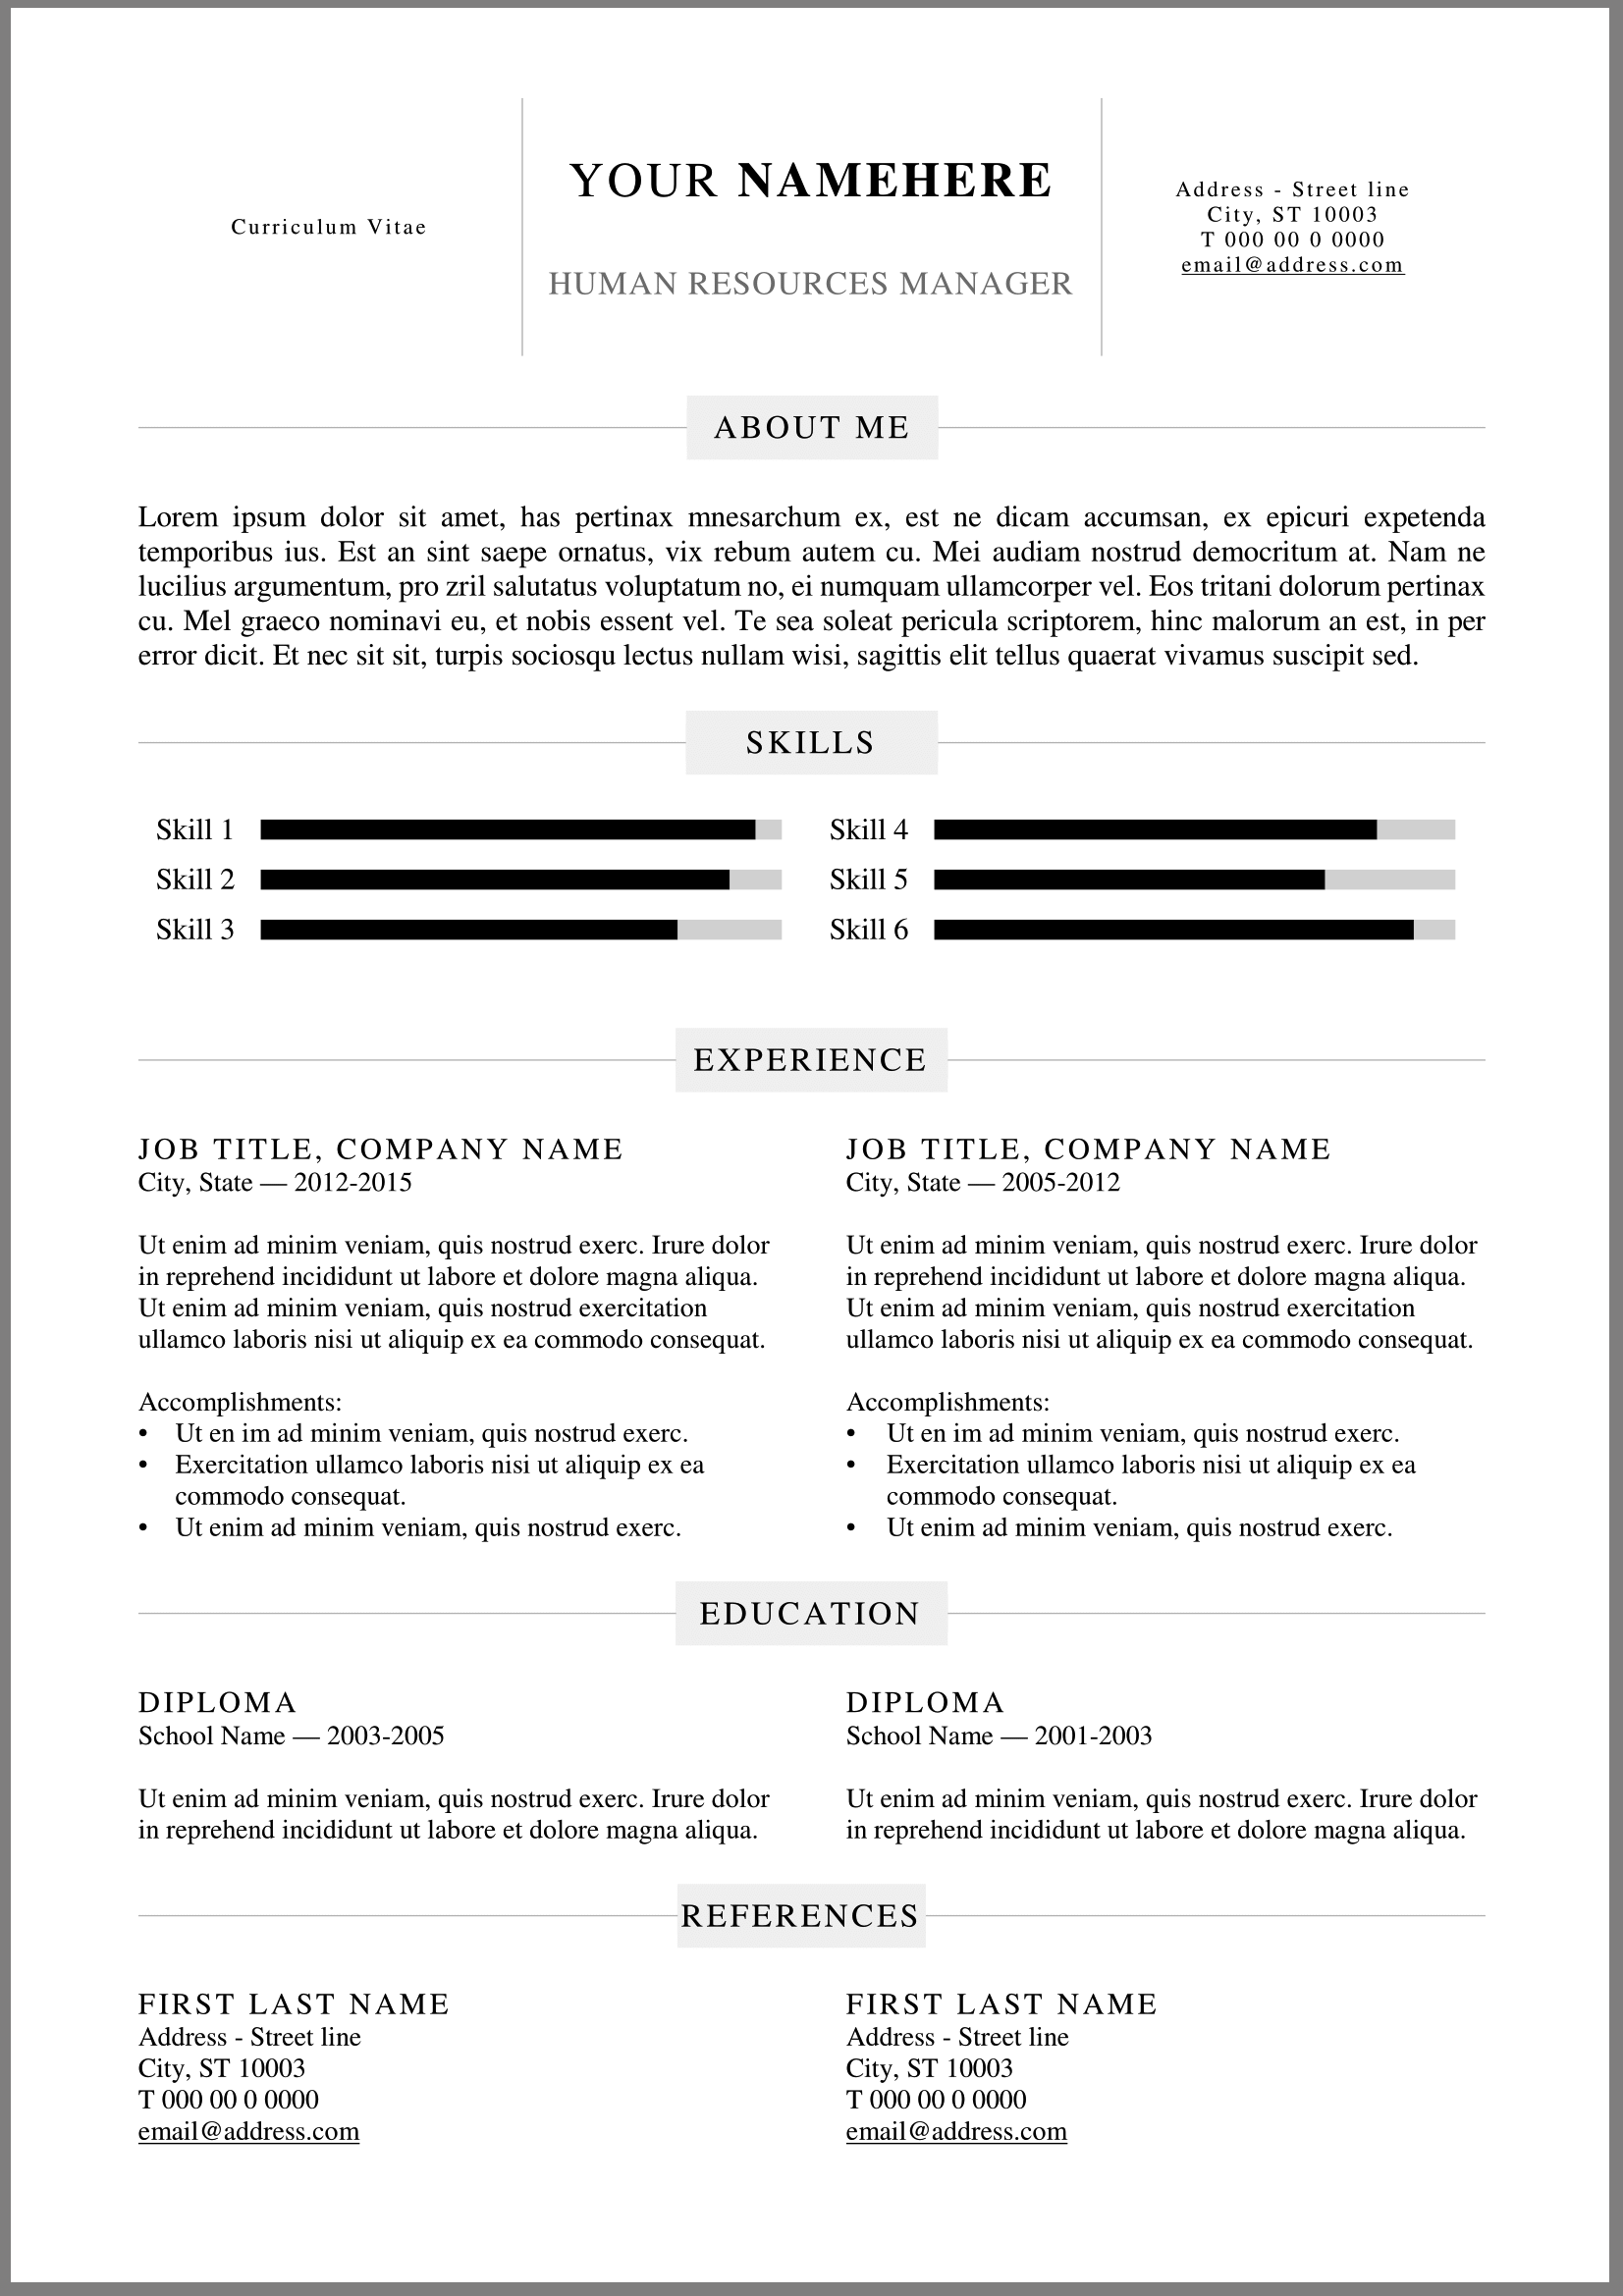 Free Resume Word Templates To Impress Your Employer  Responsive